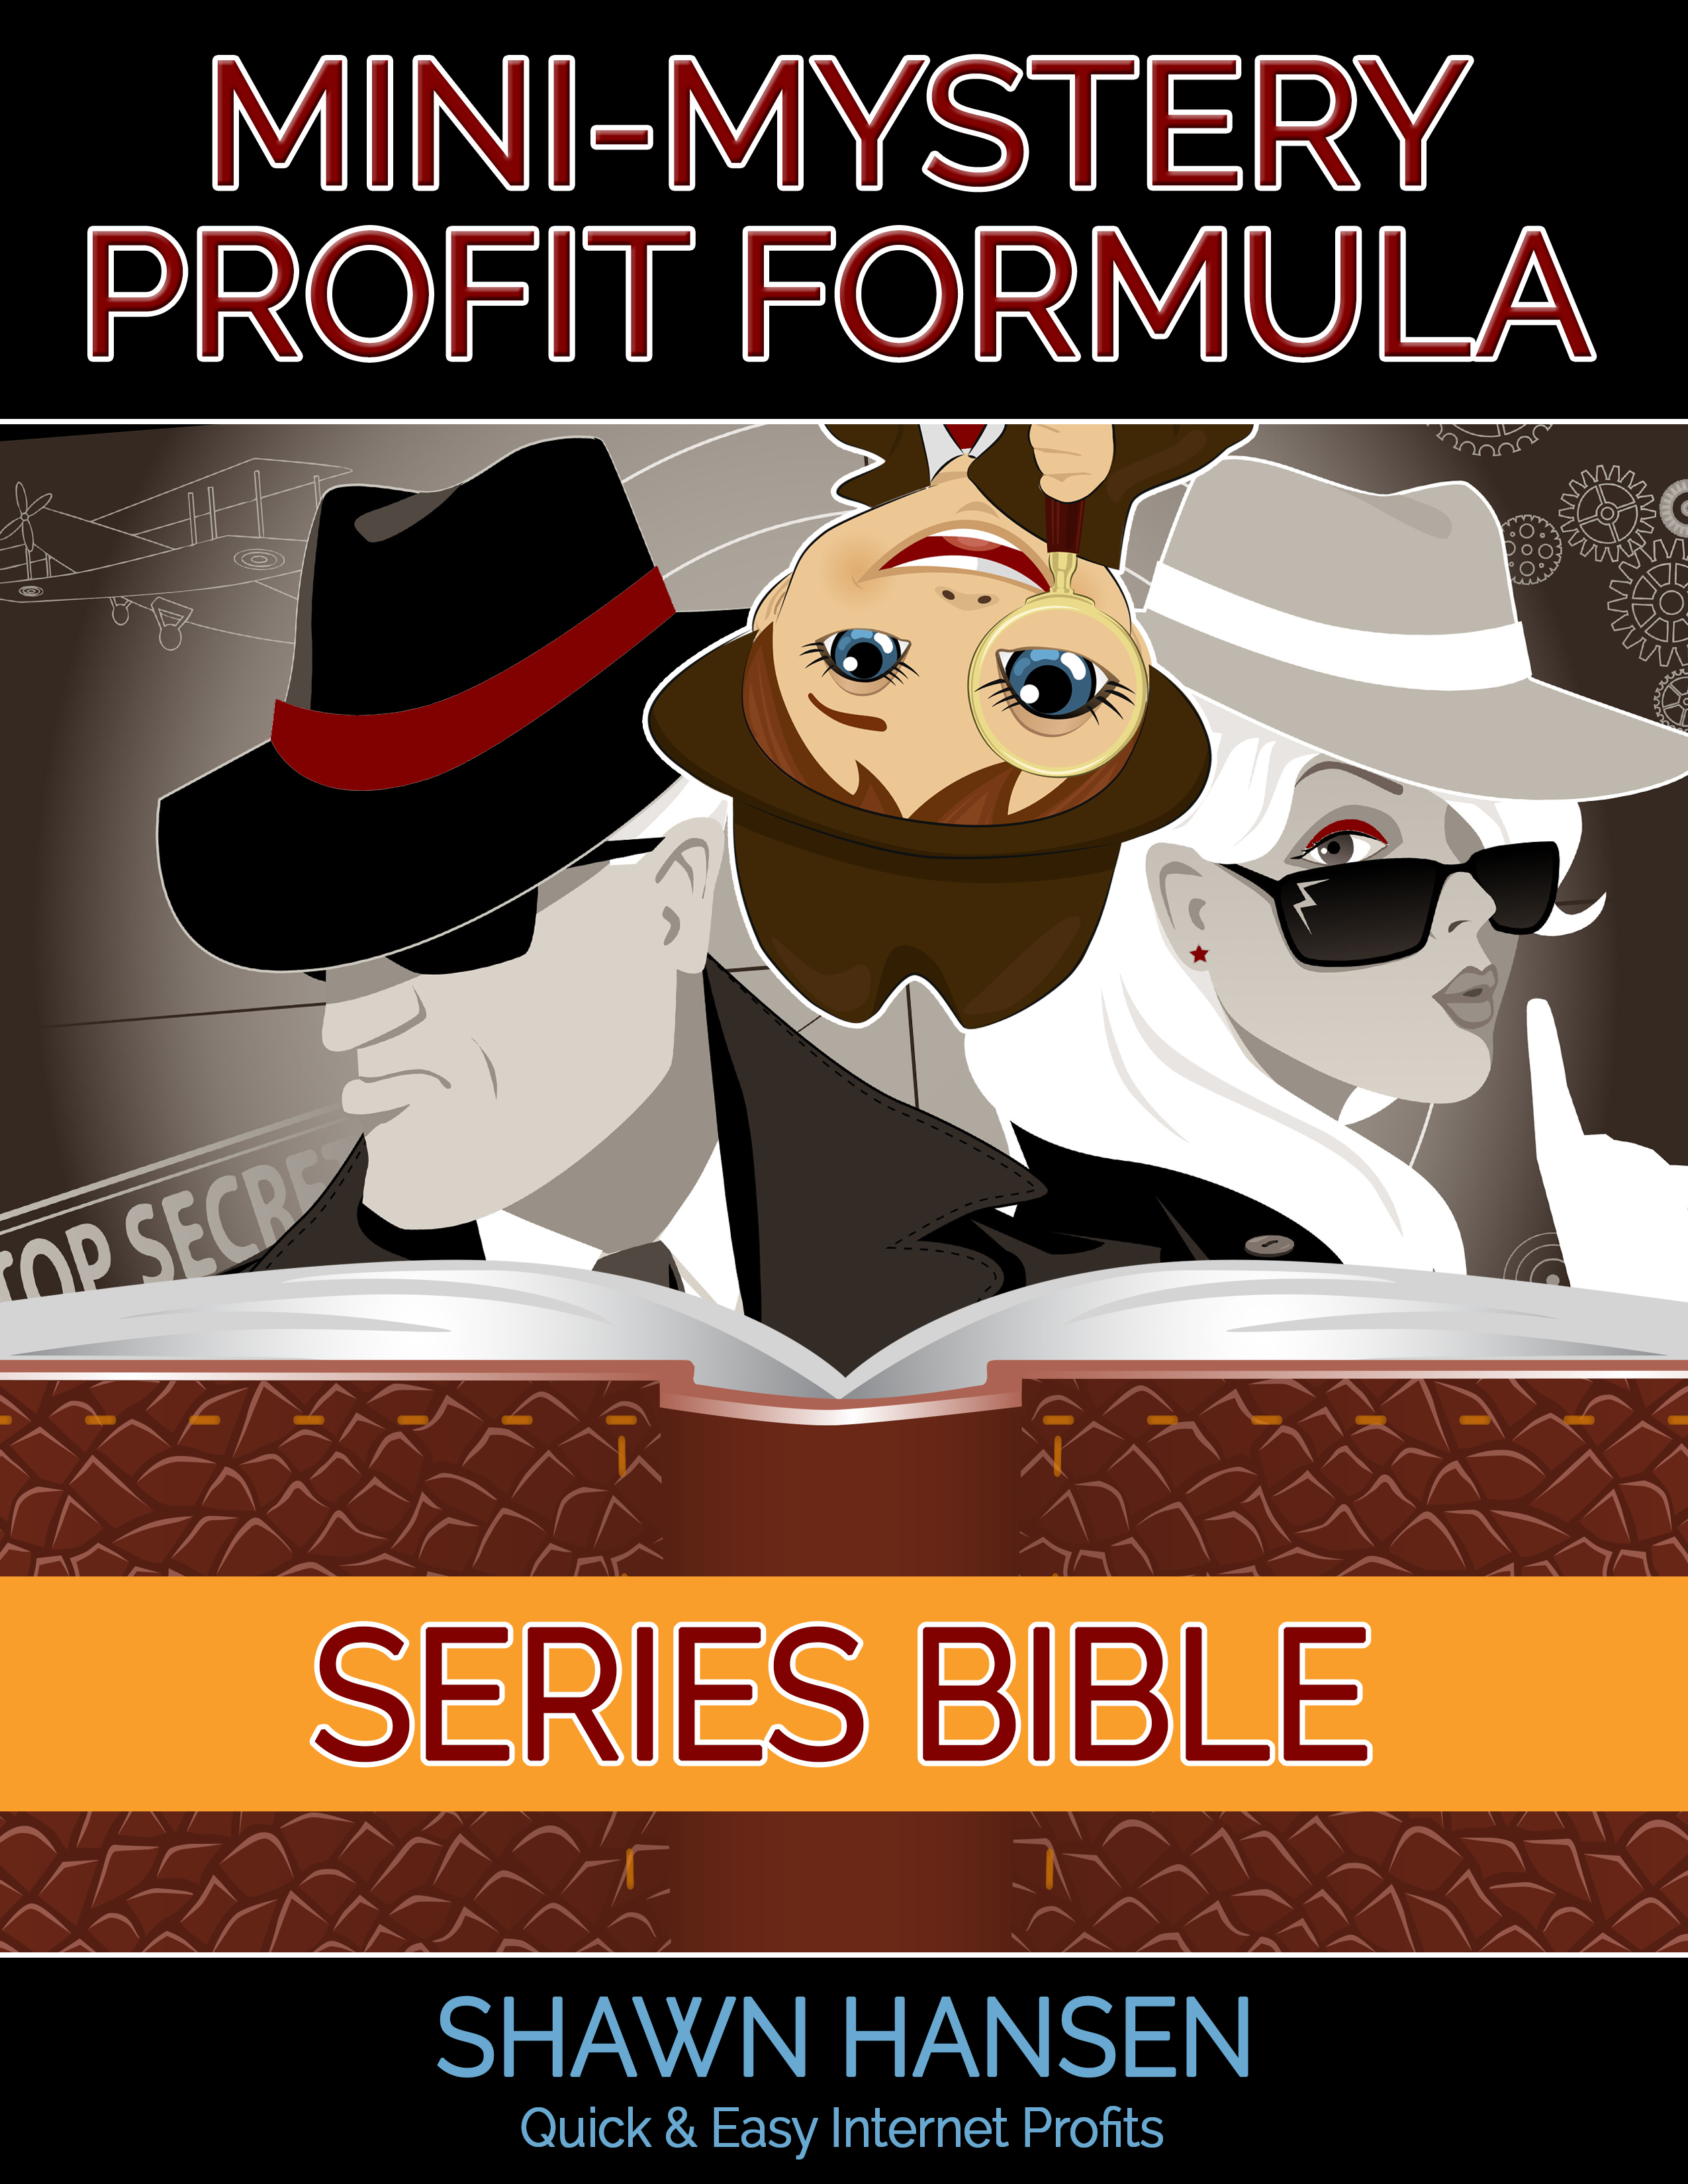 Mini-Mystery Profit Formula Writers' Toolkit Series Bible by Shawn Hansen